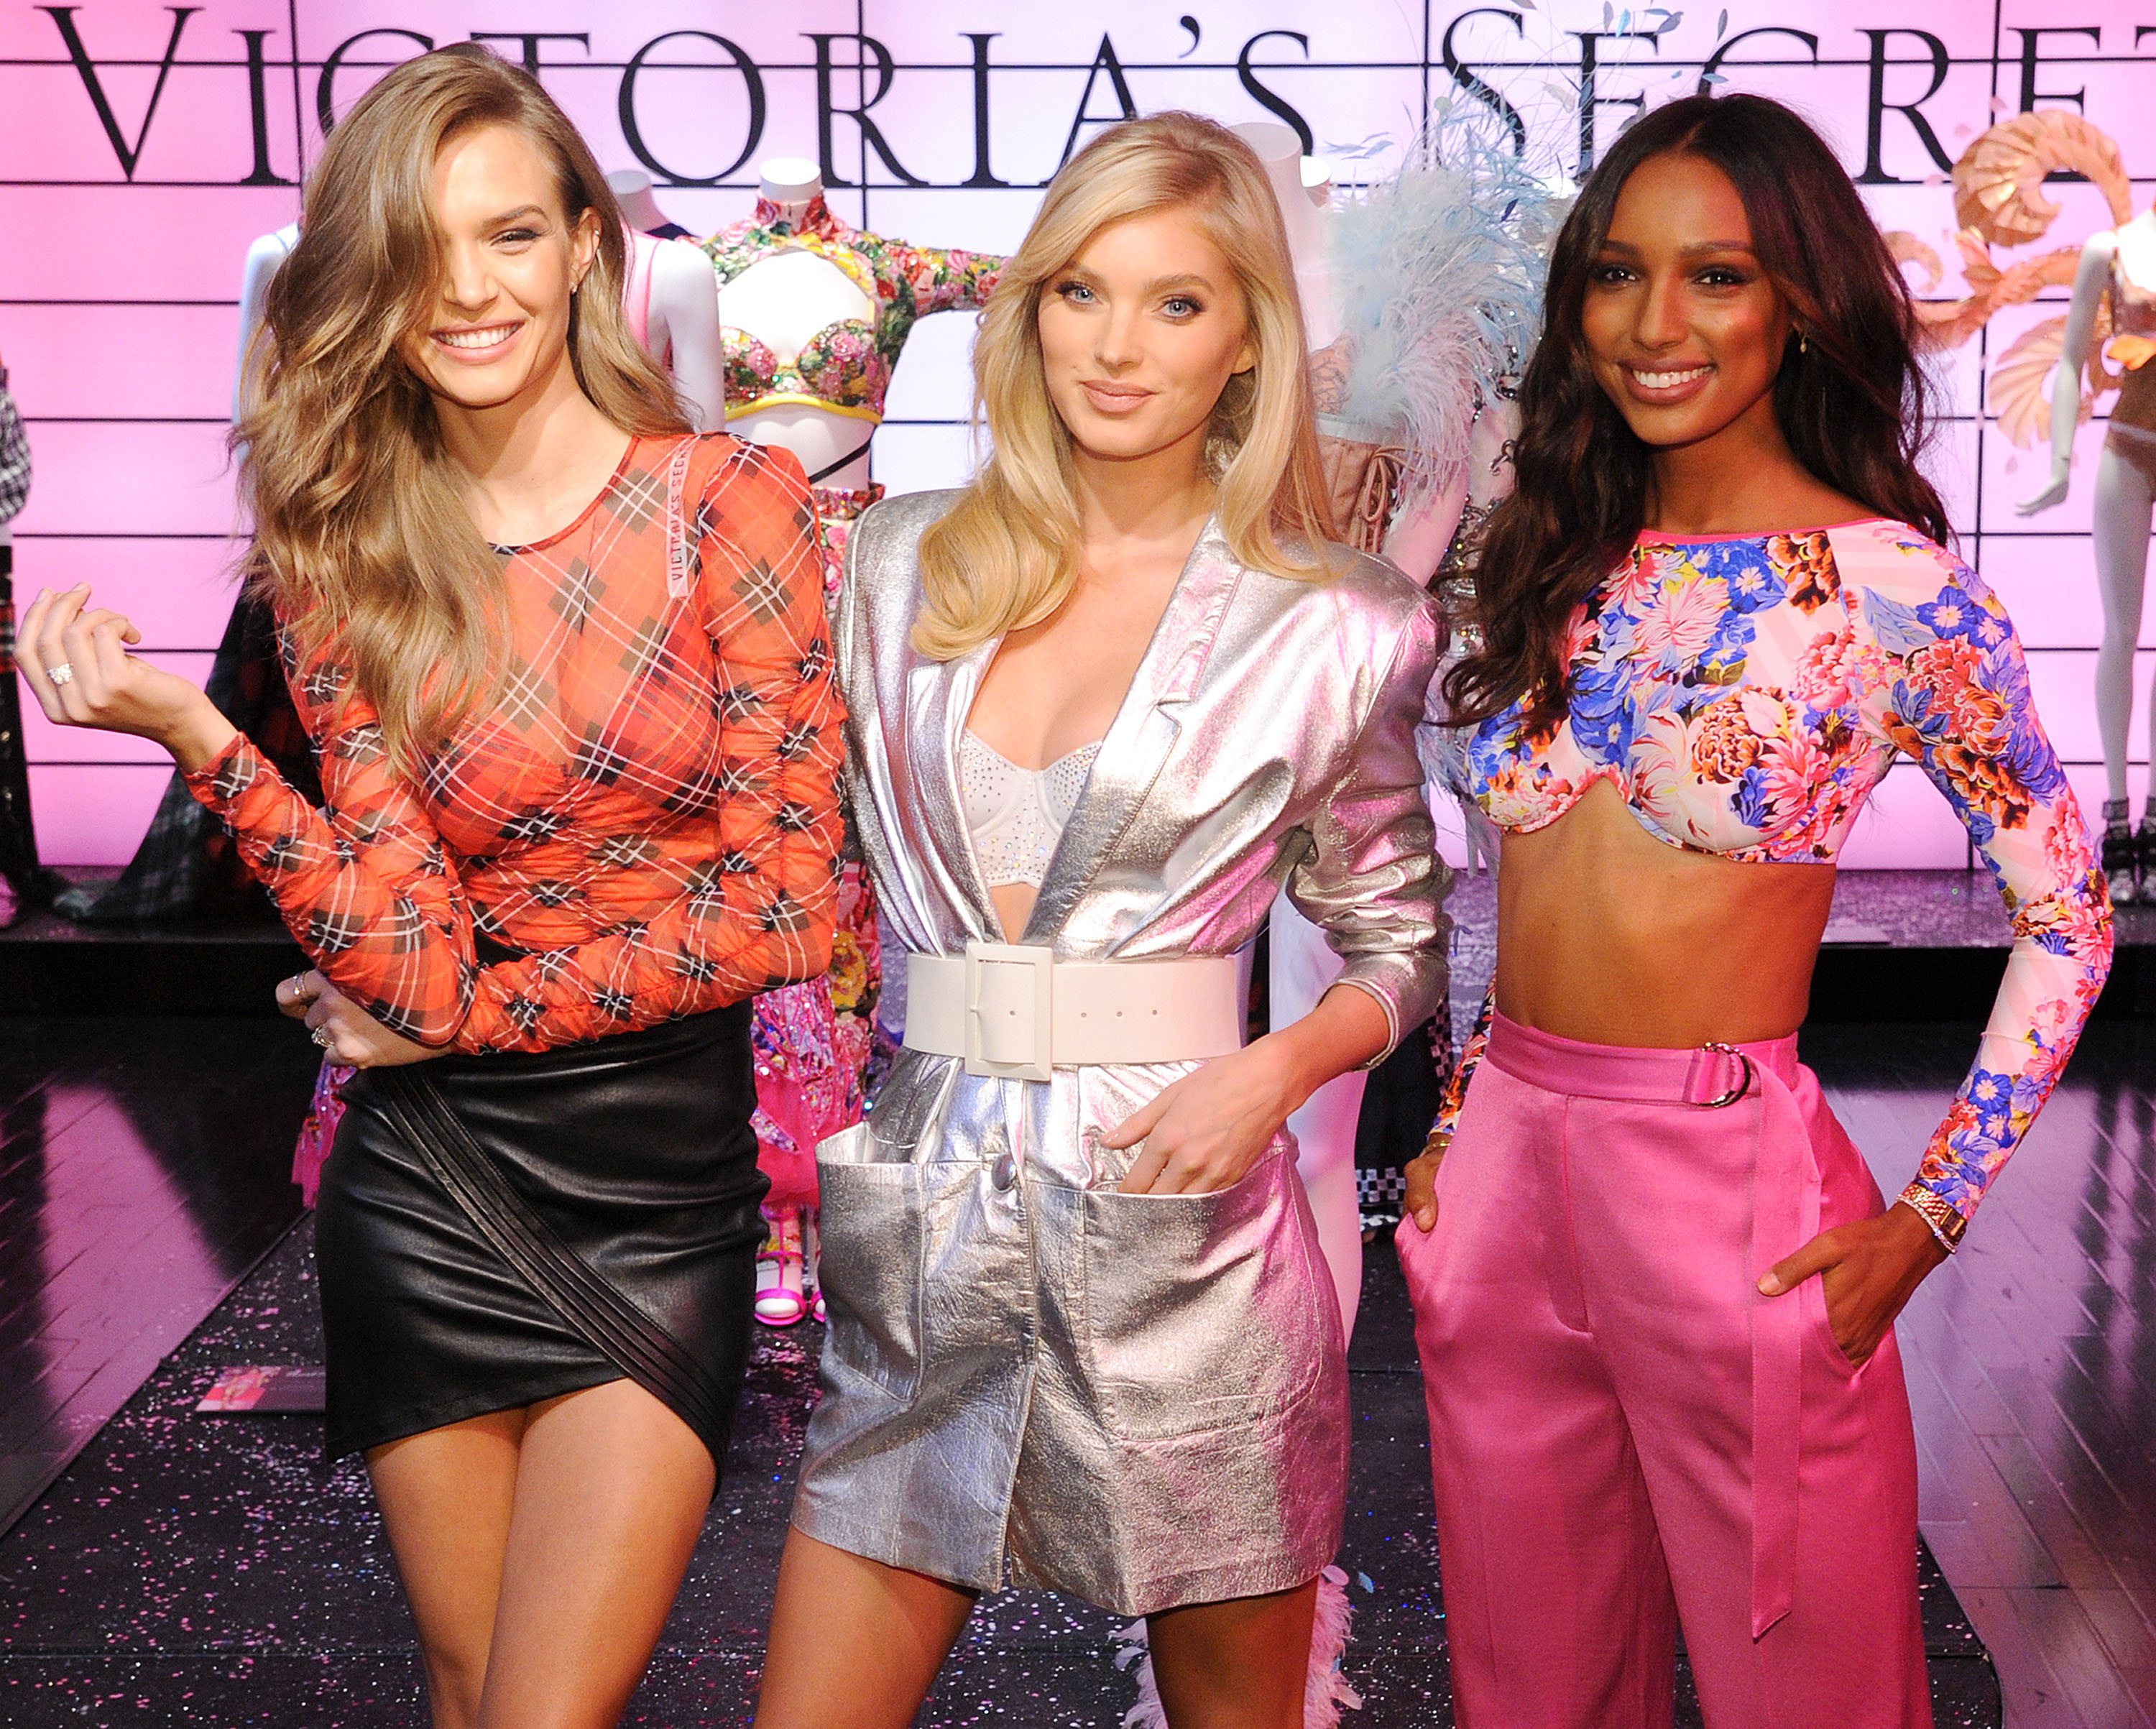 Just how much of a factor was the #MeToo movement in the sales performance at intimates mainstay Victoria's Secret?